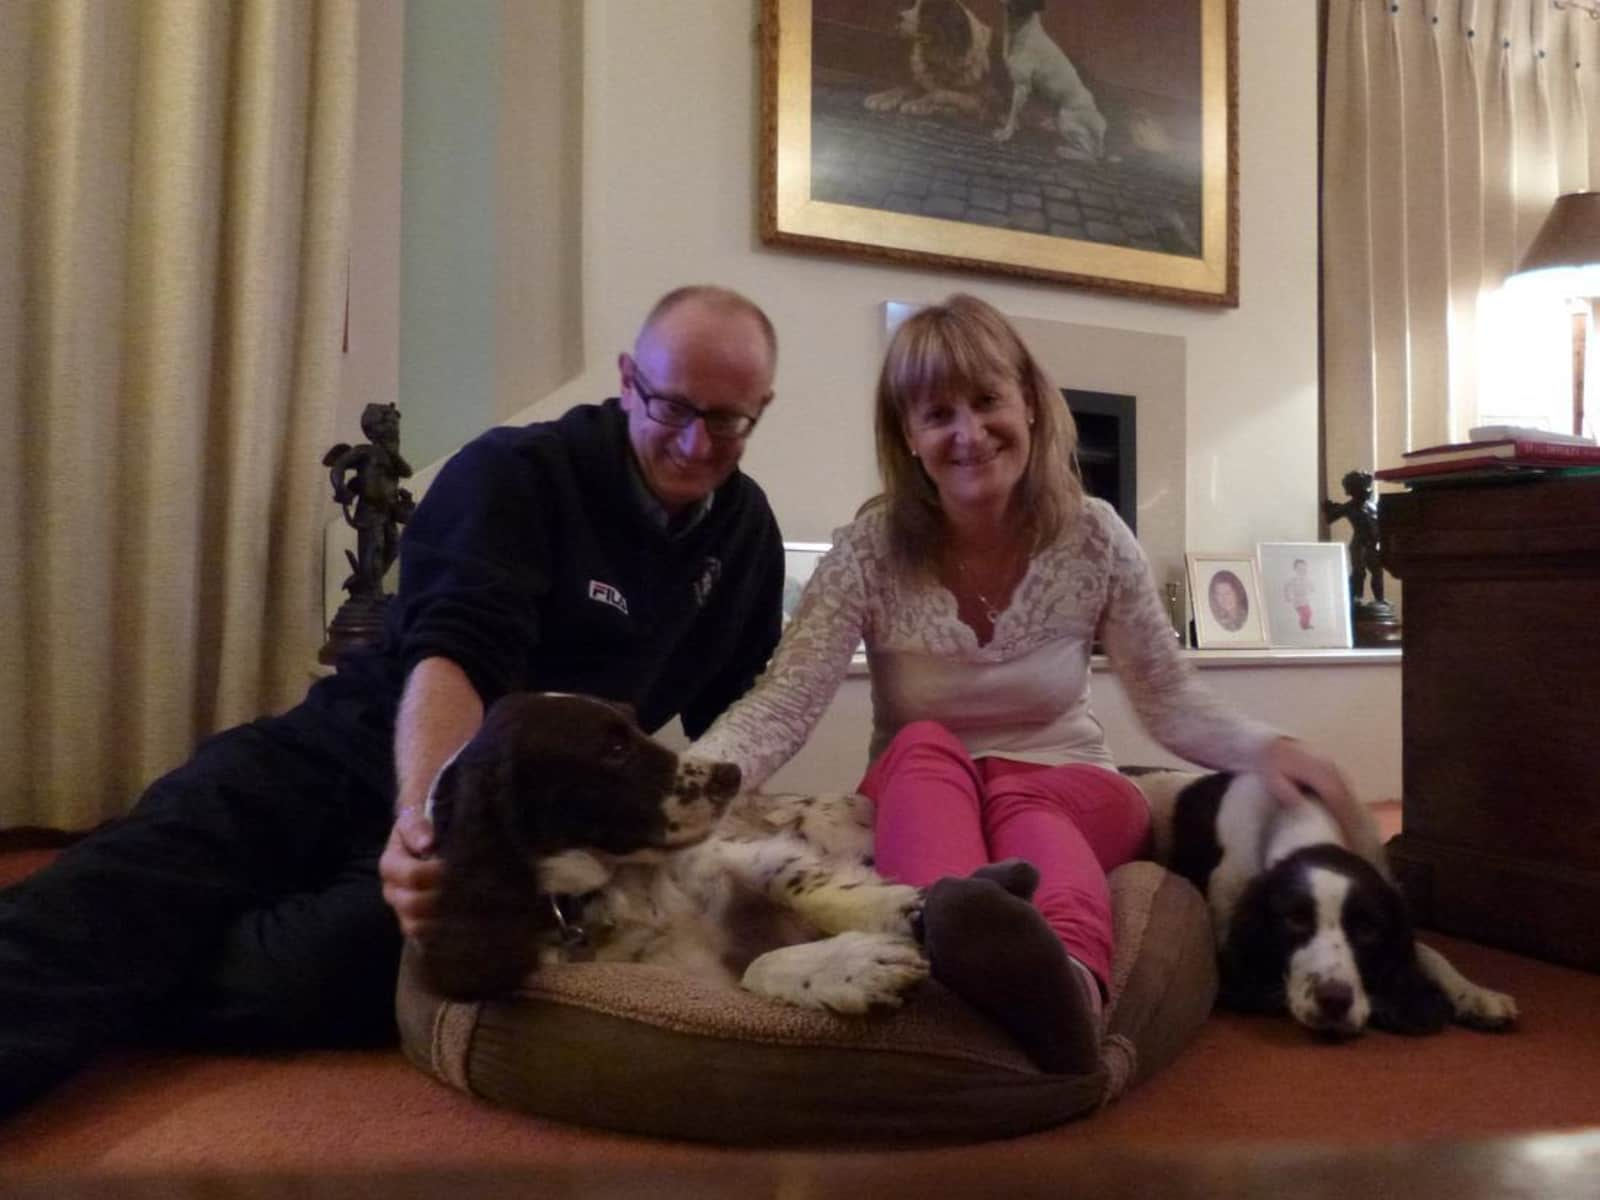 Sally-anne & Rupert from Tring, United Kingdom